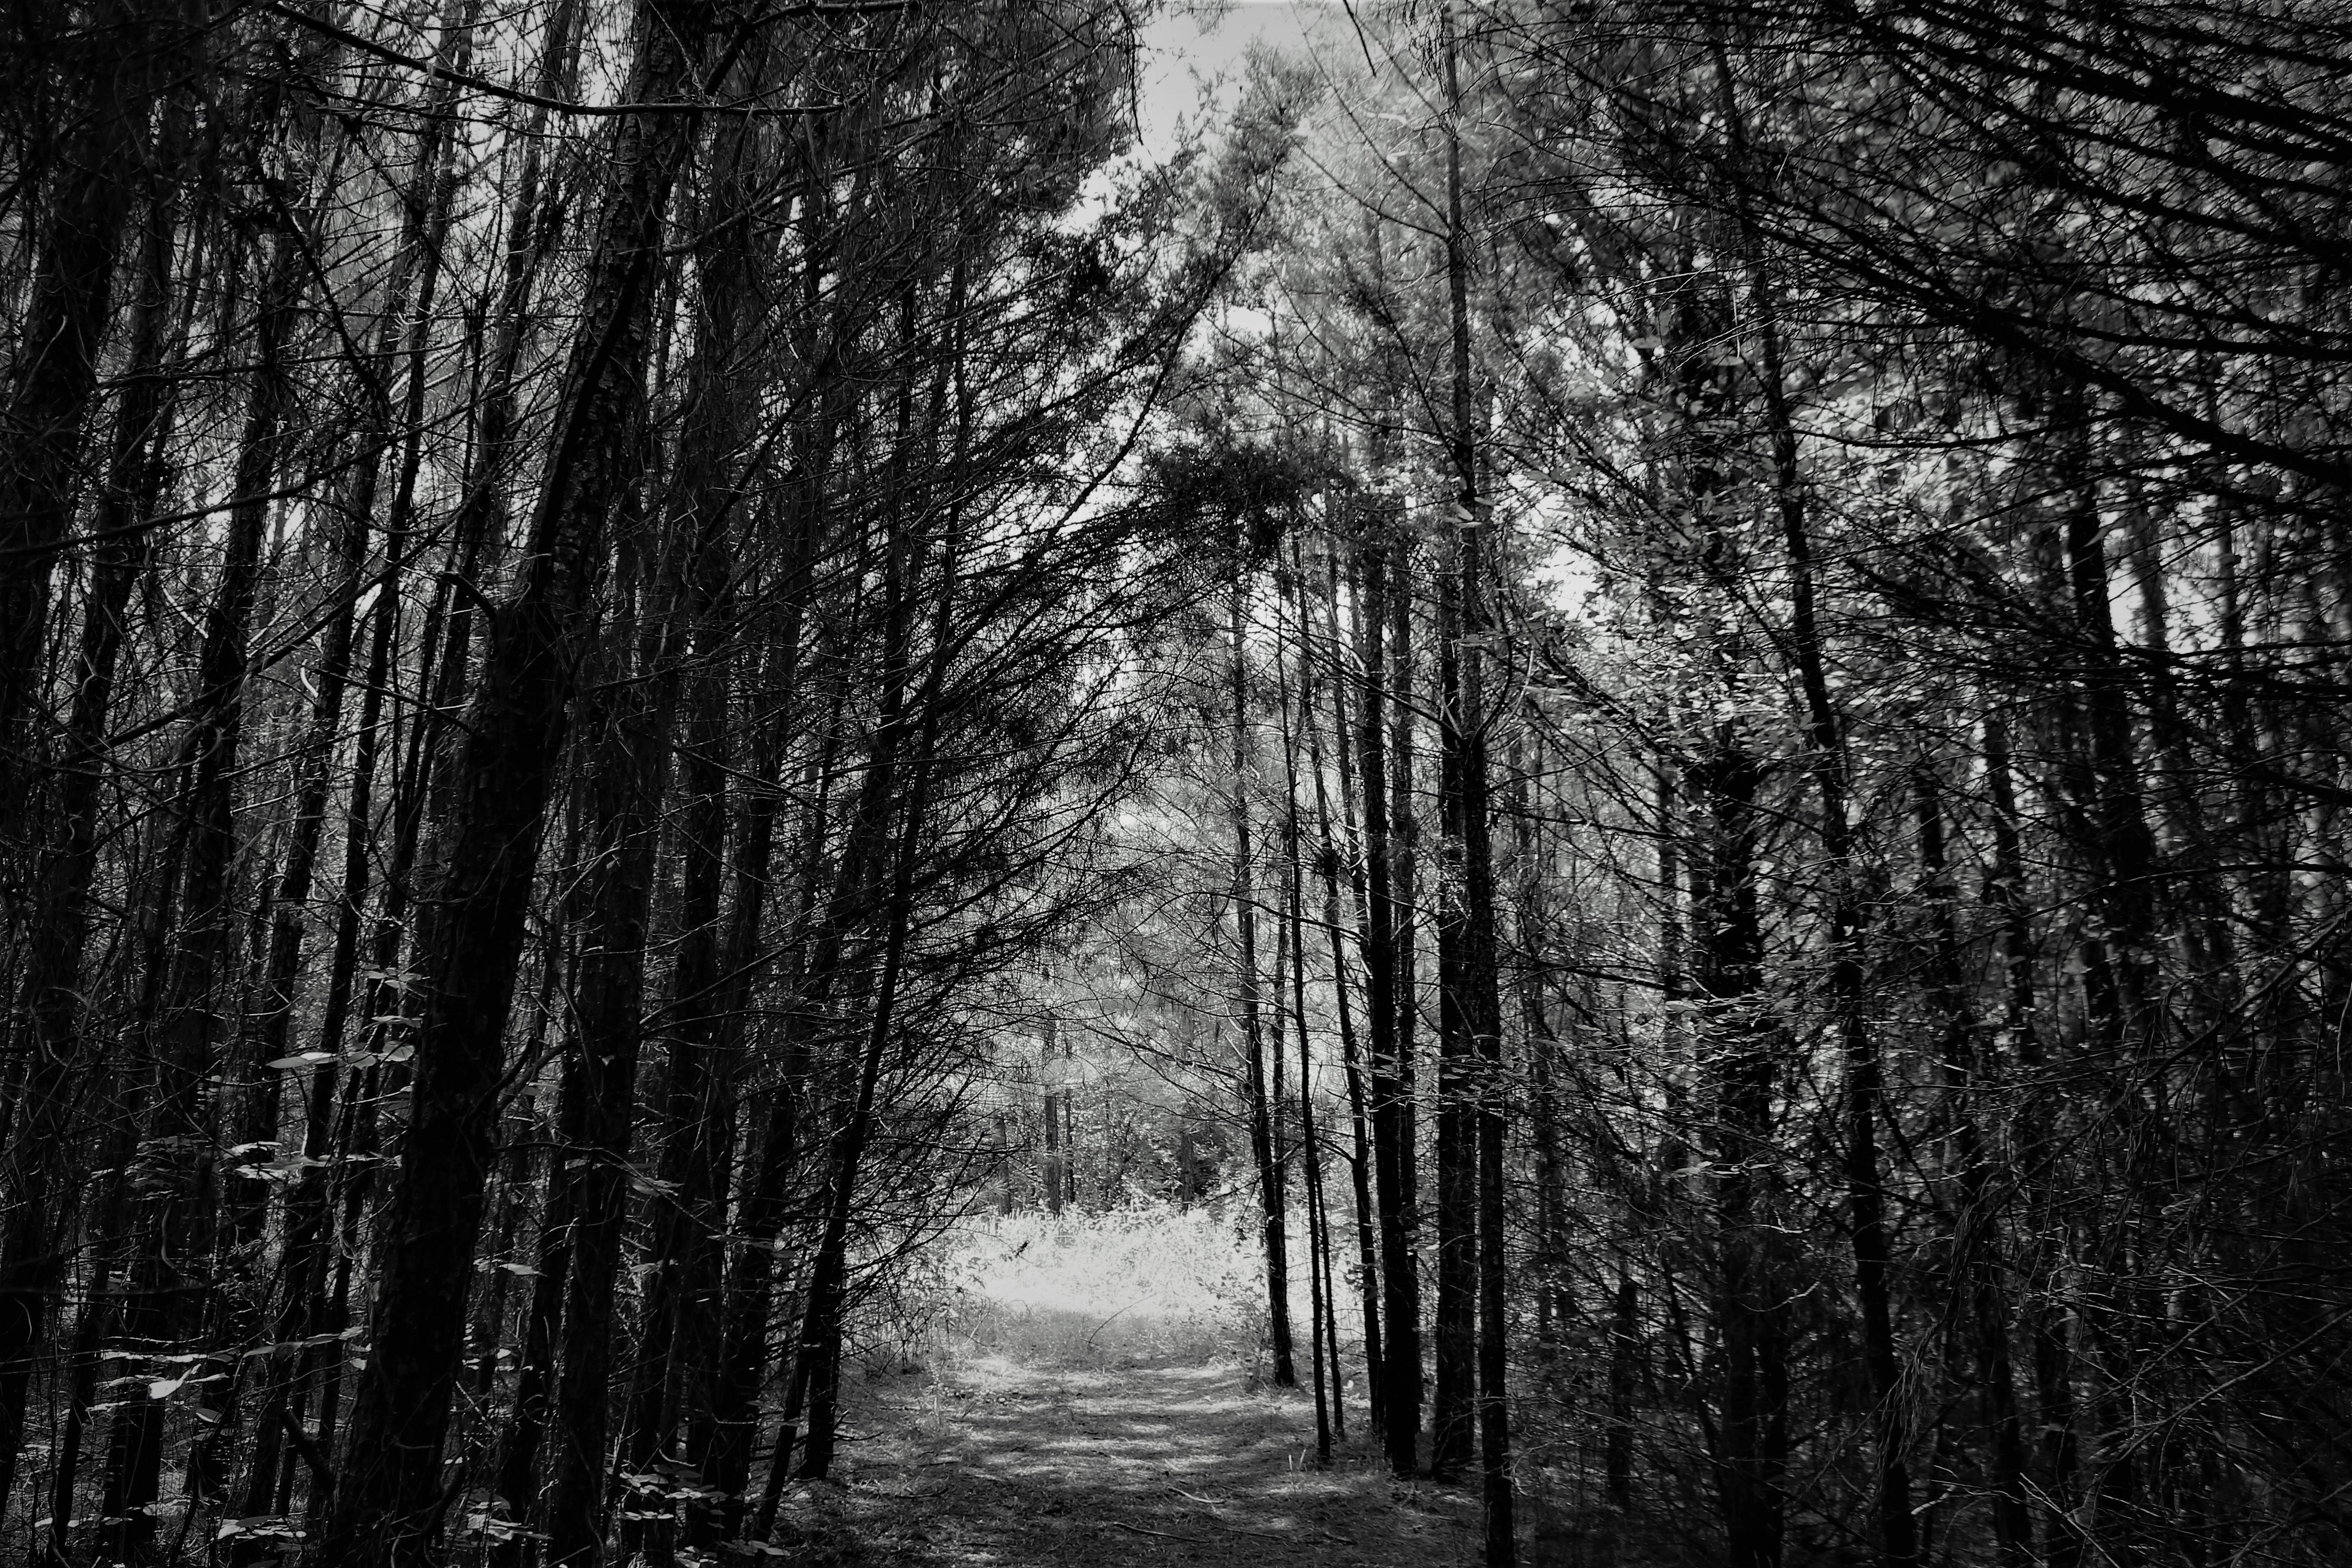 Greyscale Photo of Forest Pathway